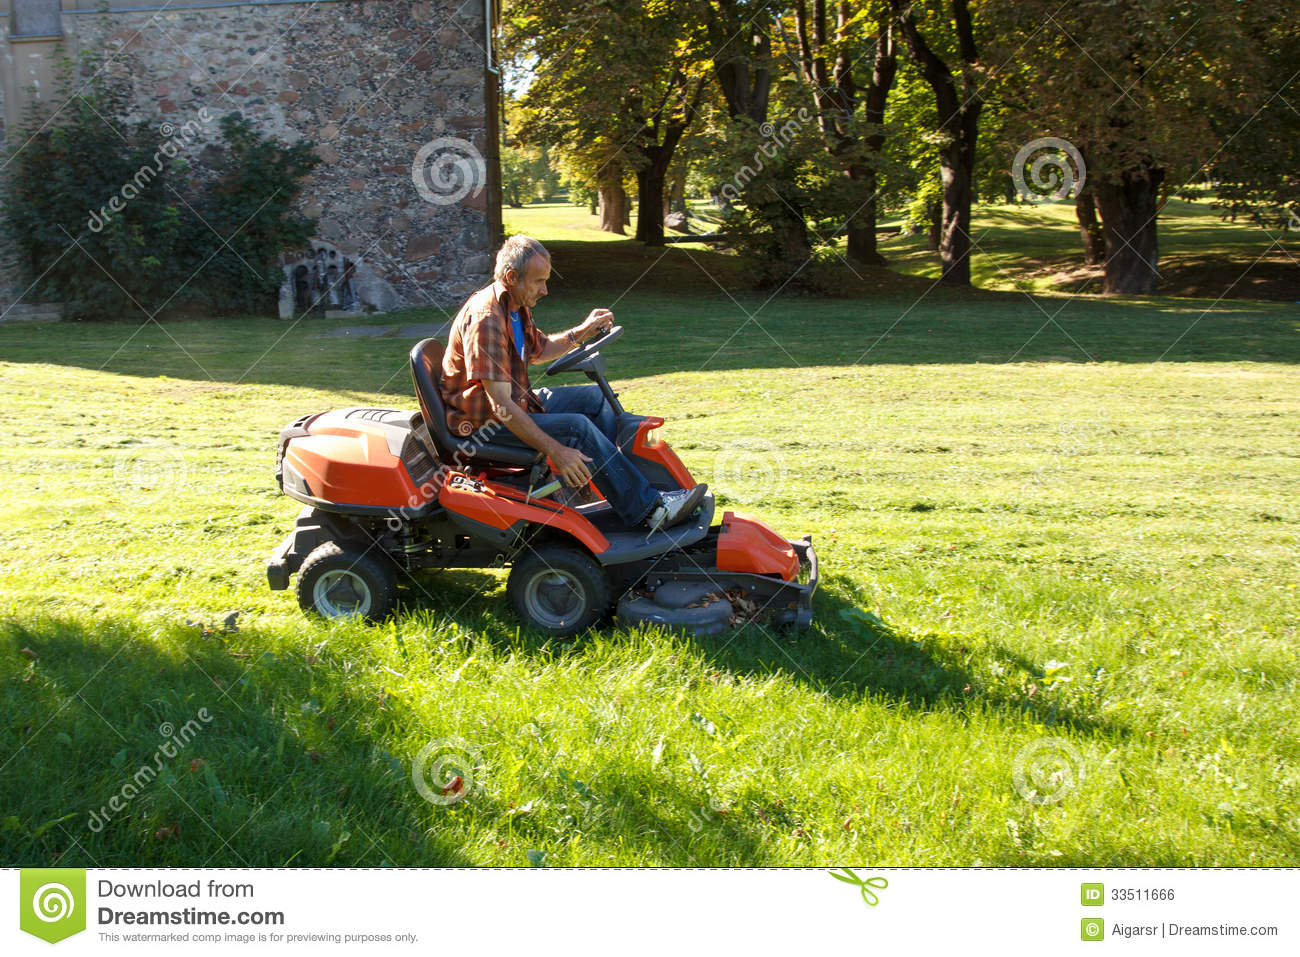 Man On Tractor Lawn Enforcment : Man driving a red lawn mower tractor royalty free stock